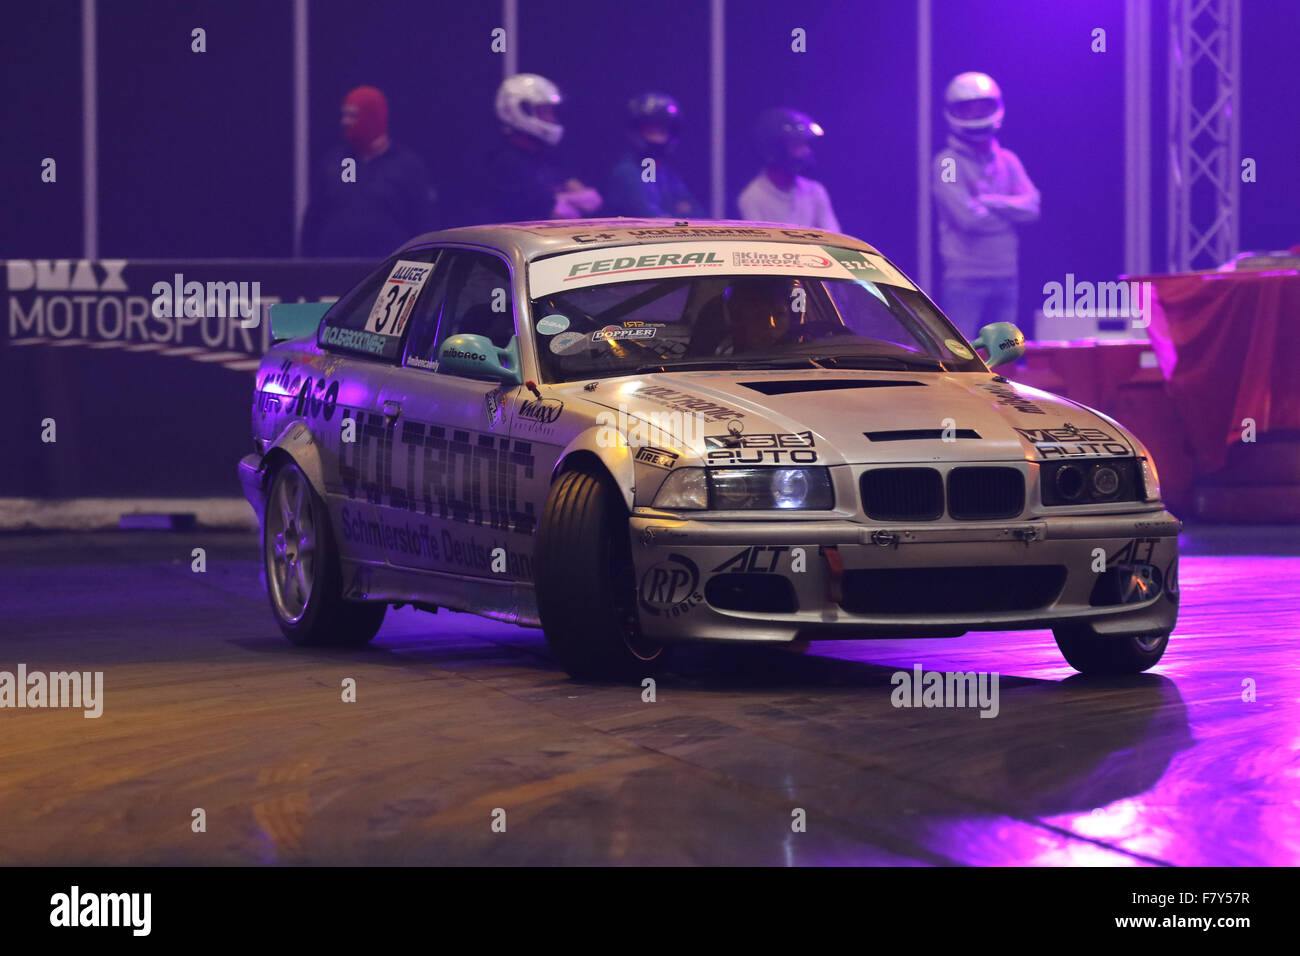 Essen, Germany. 3rd Dec,  2015. Essen Motor Show.  DMAX Motorsport Arena. Credit:  Ashley Greb/Alamy Live News - Stock Image